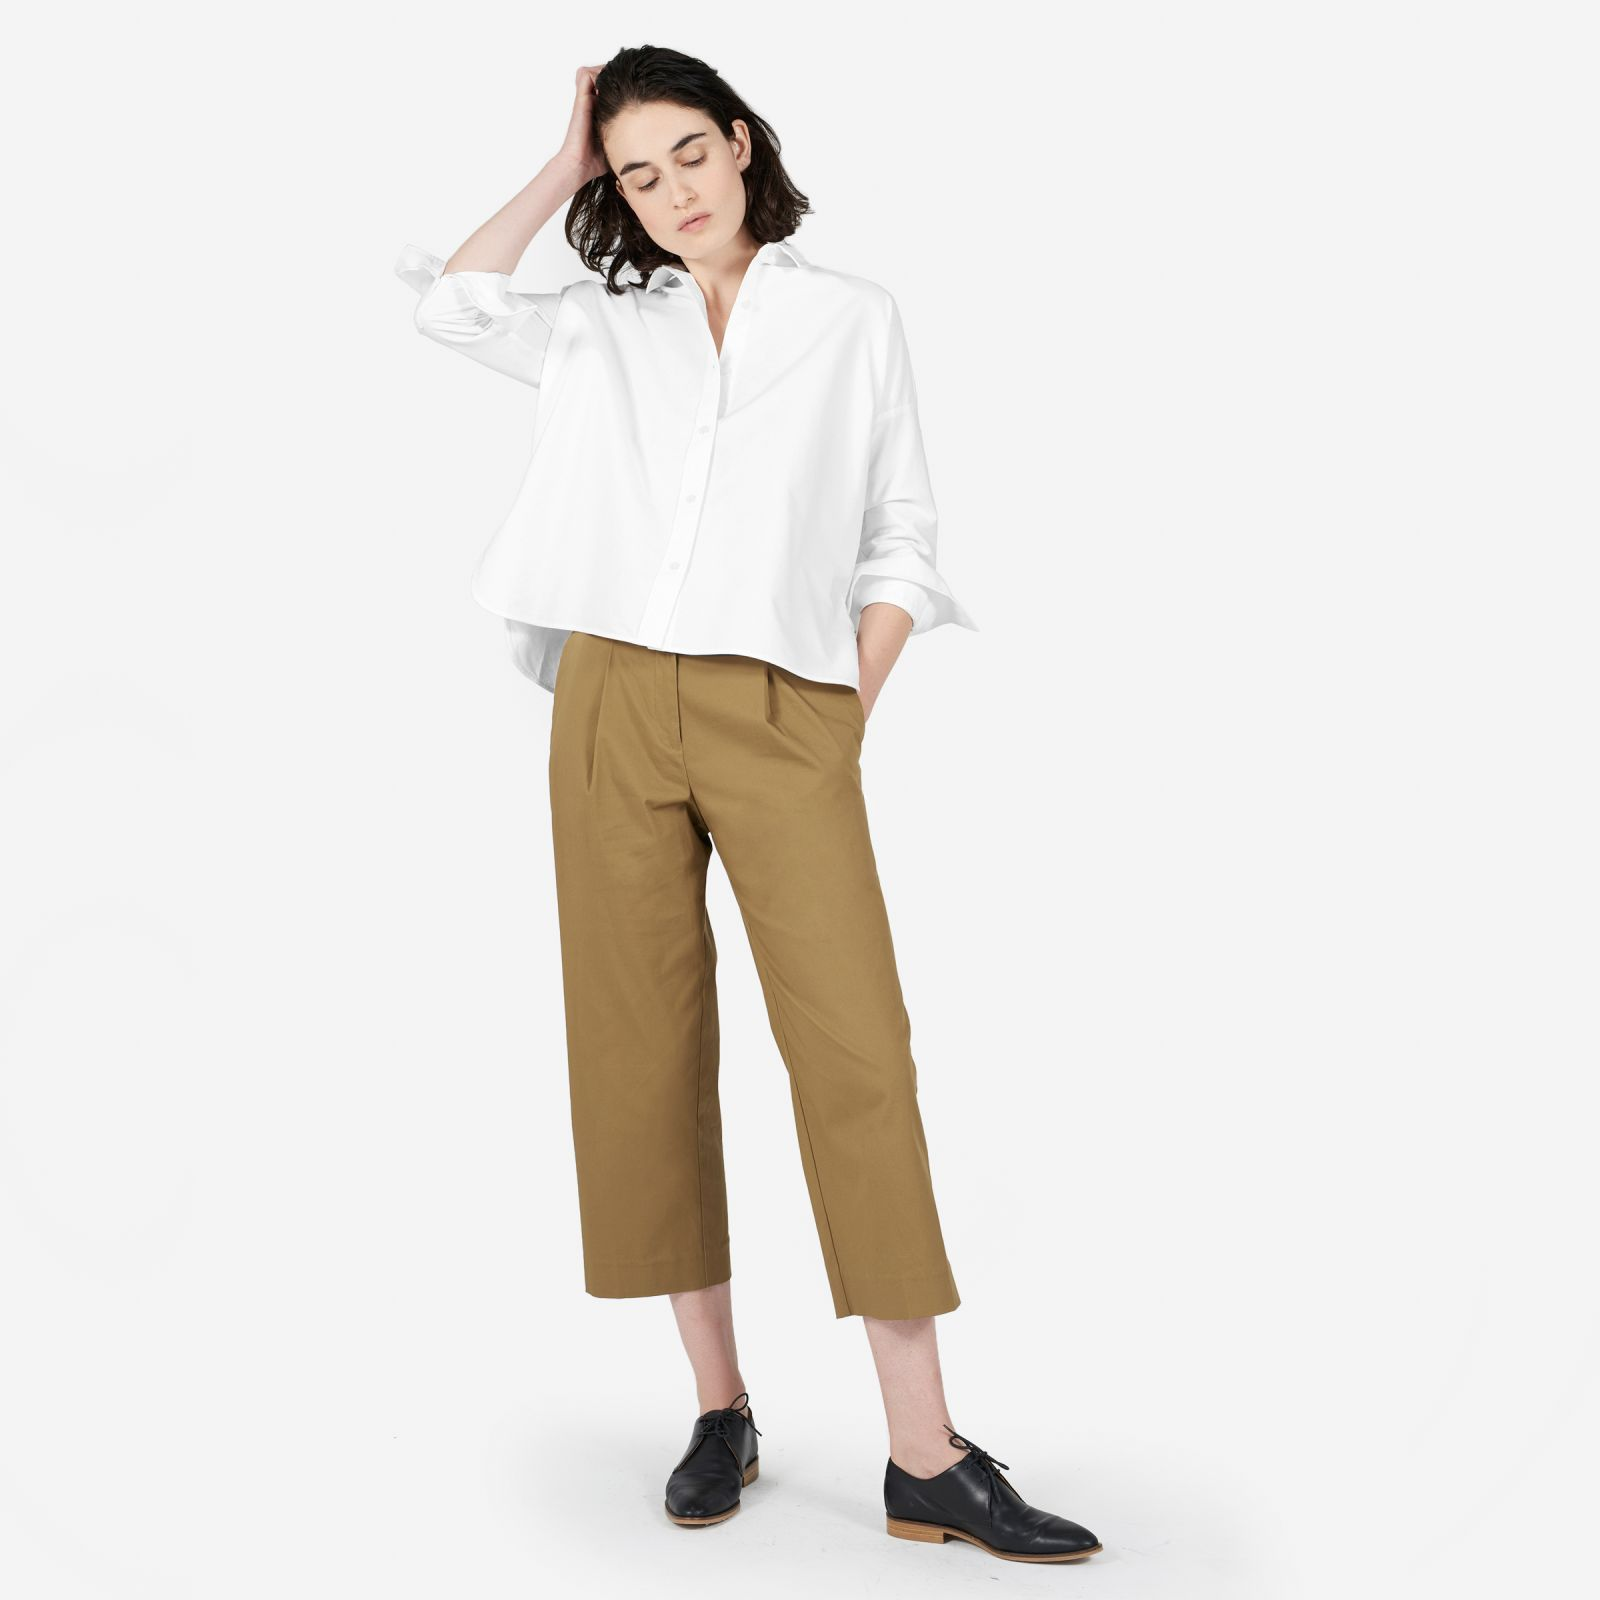 women's japanese oxford square shirt by everlane in white, size 10